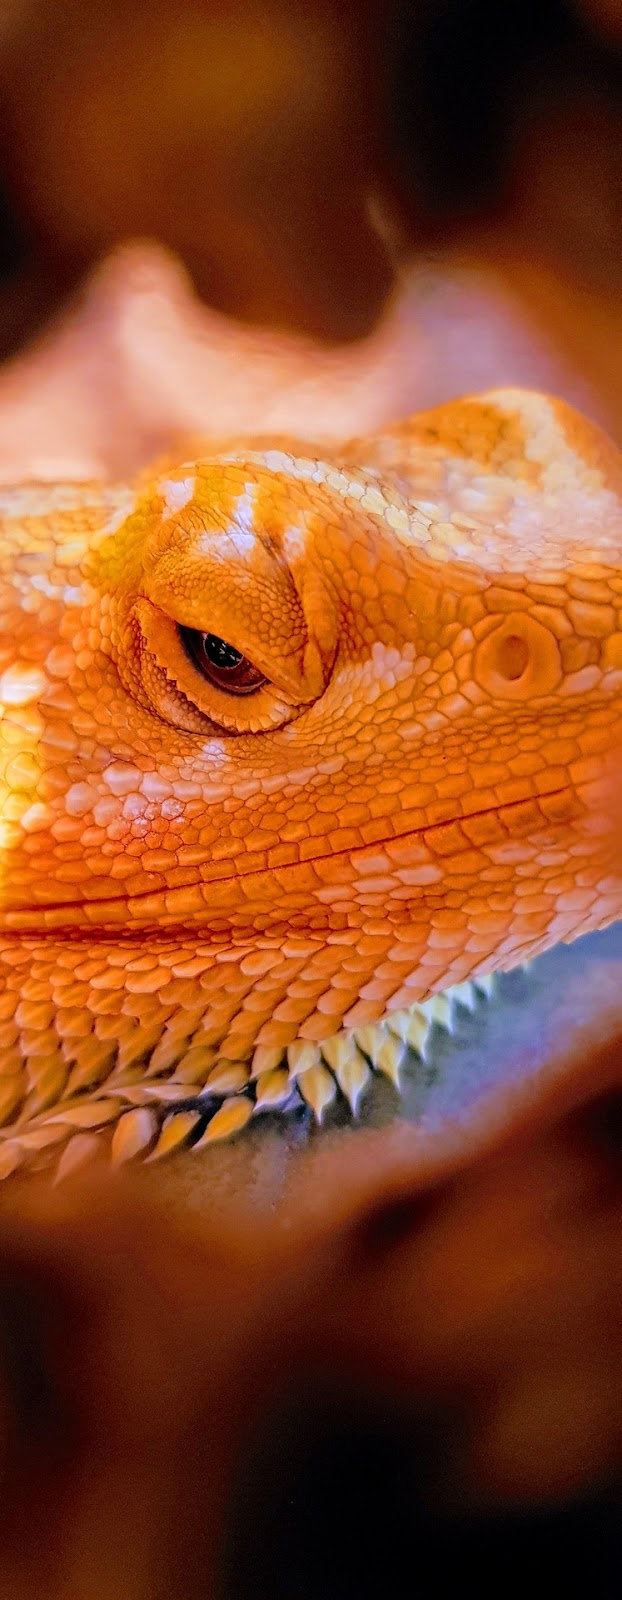 A menacing look of bearded dragon.